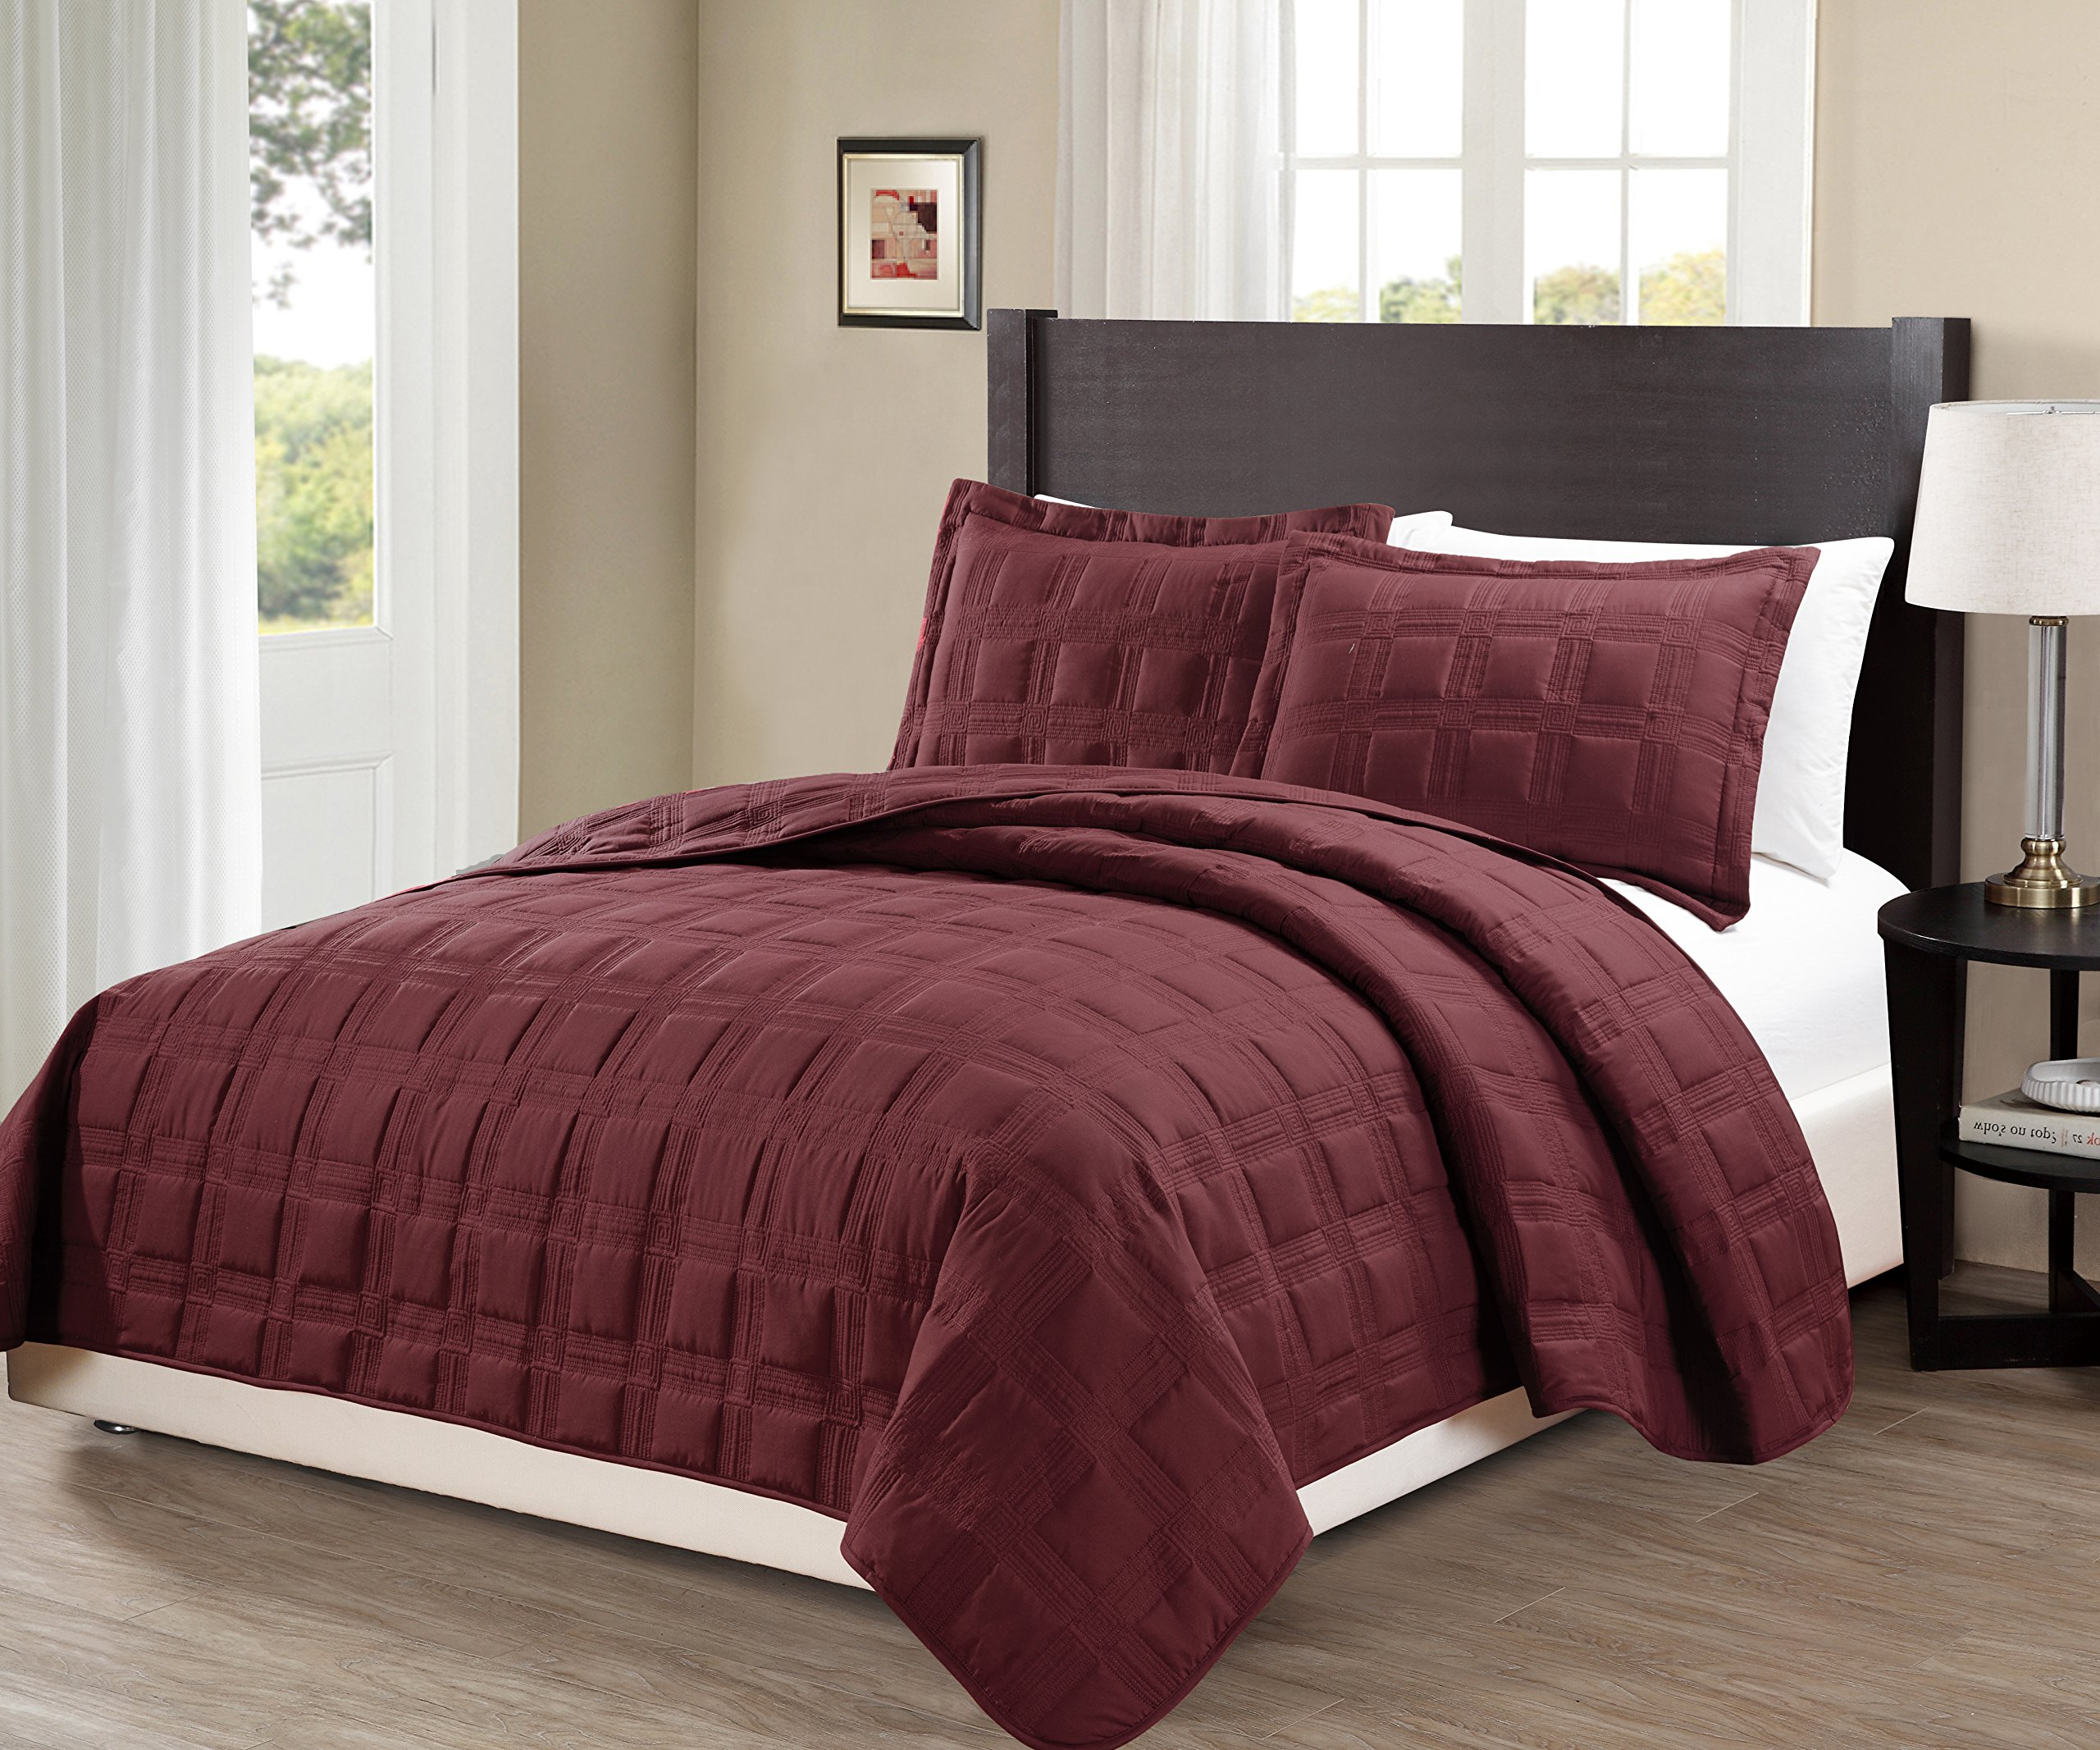 Fancy Collection 3pc King/California King Oversize Quilted Embroidery Bedspread Coverlet Set Solid Burgundy New by Fancy Linen